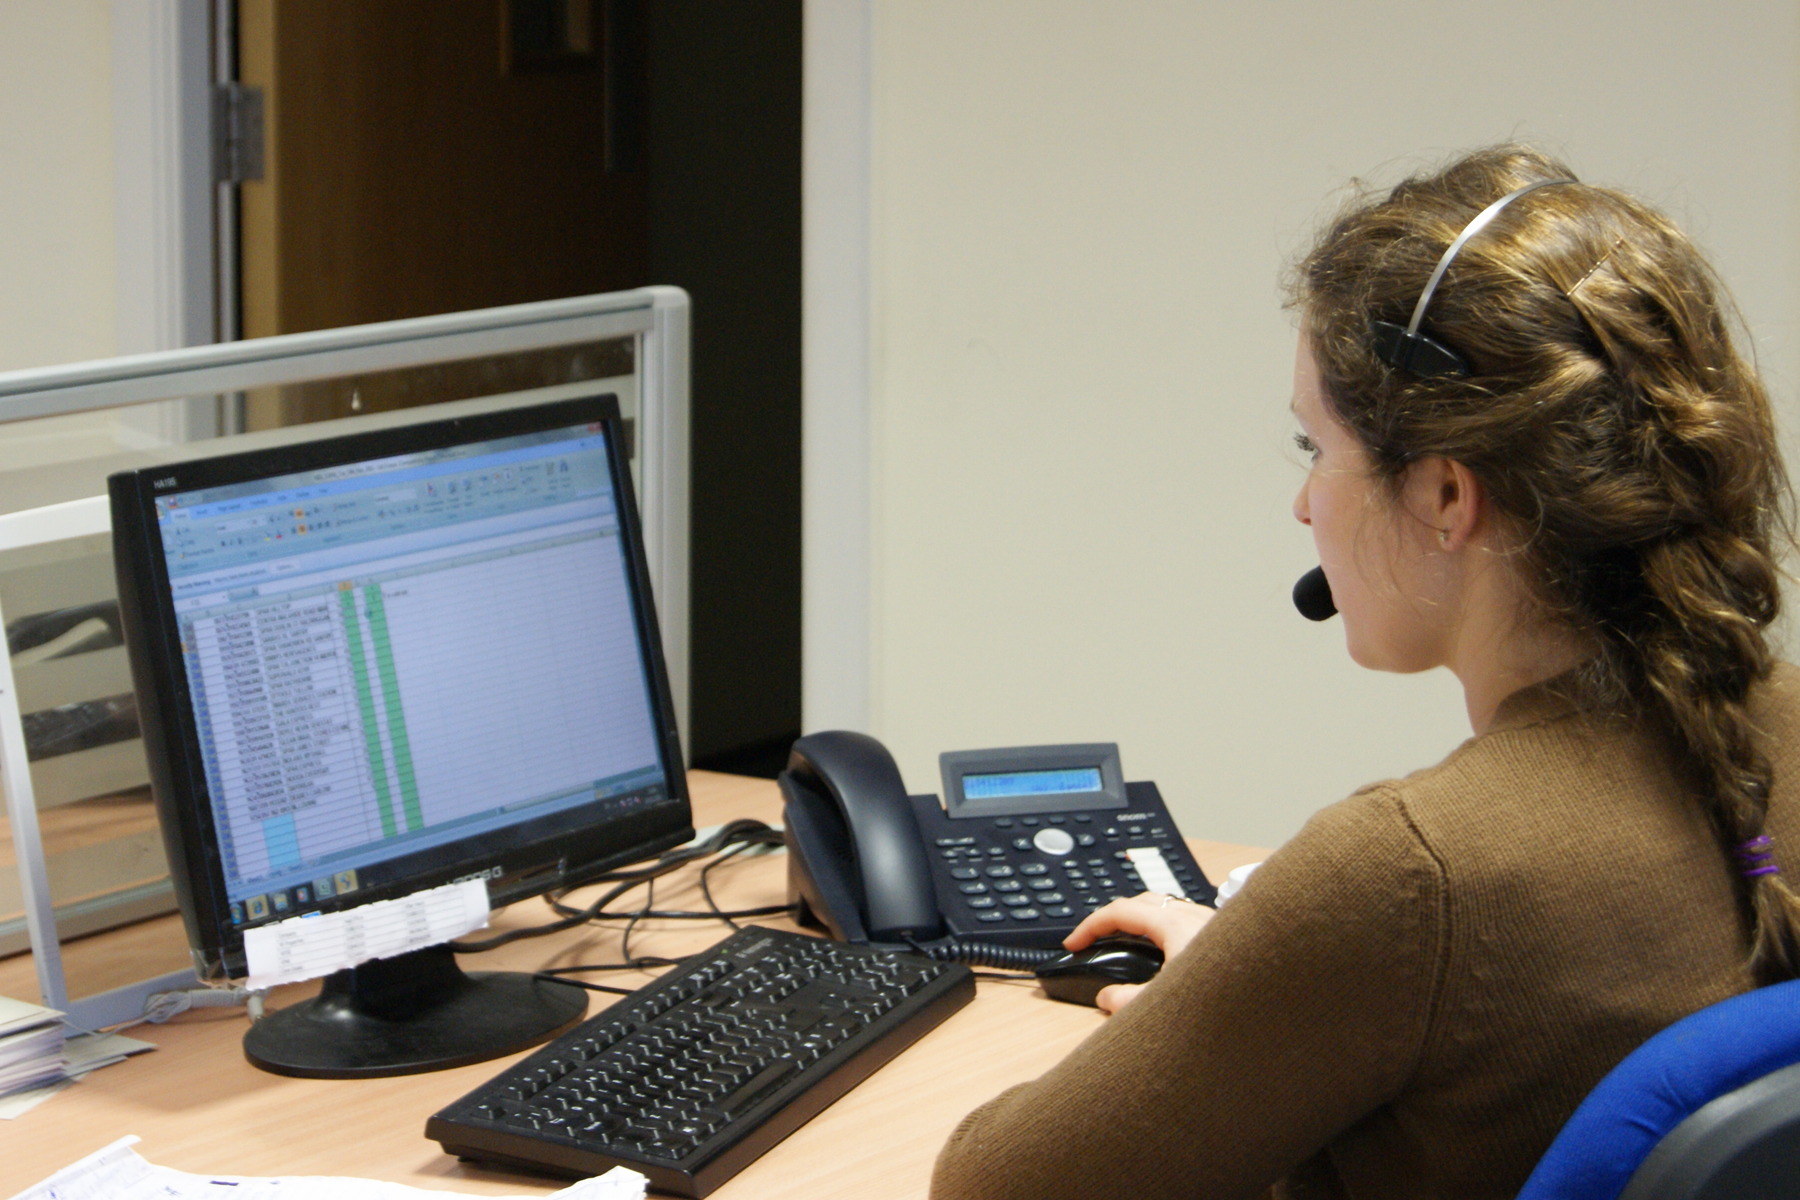 Call Management provides services for SME call centre and contact centre